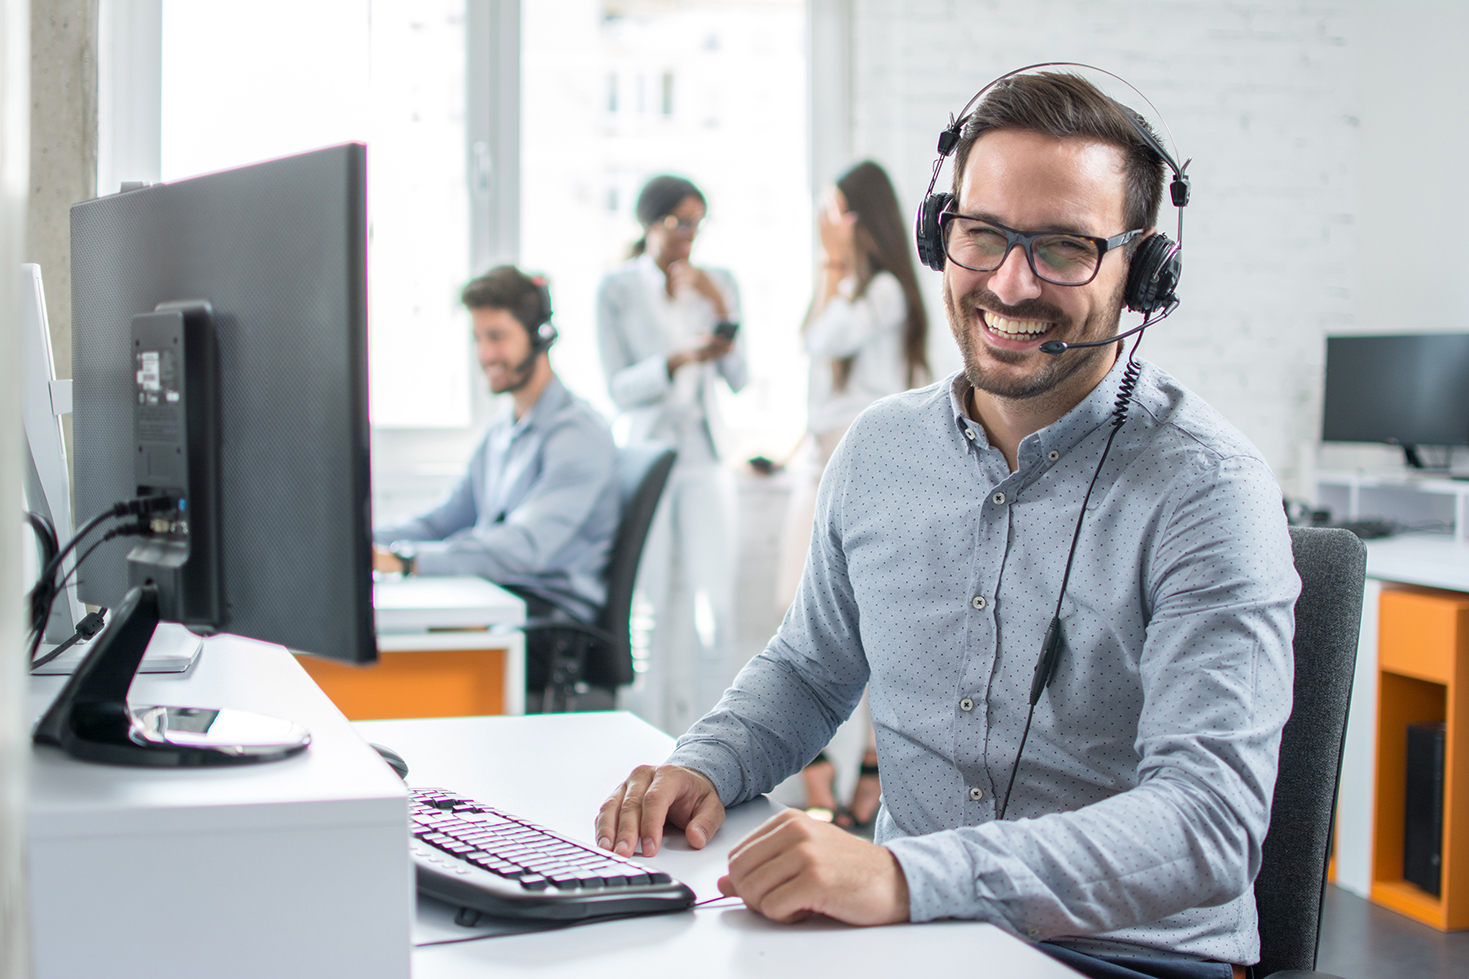 The best VoIP phone providers deliver excellent customer experiences.